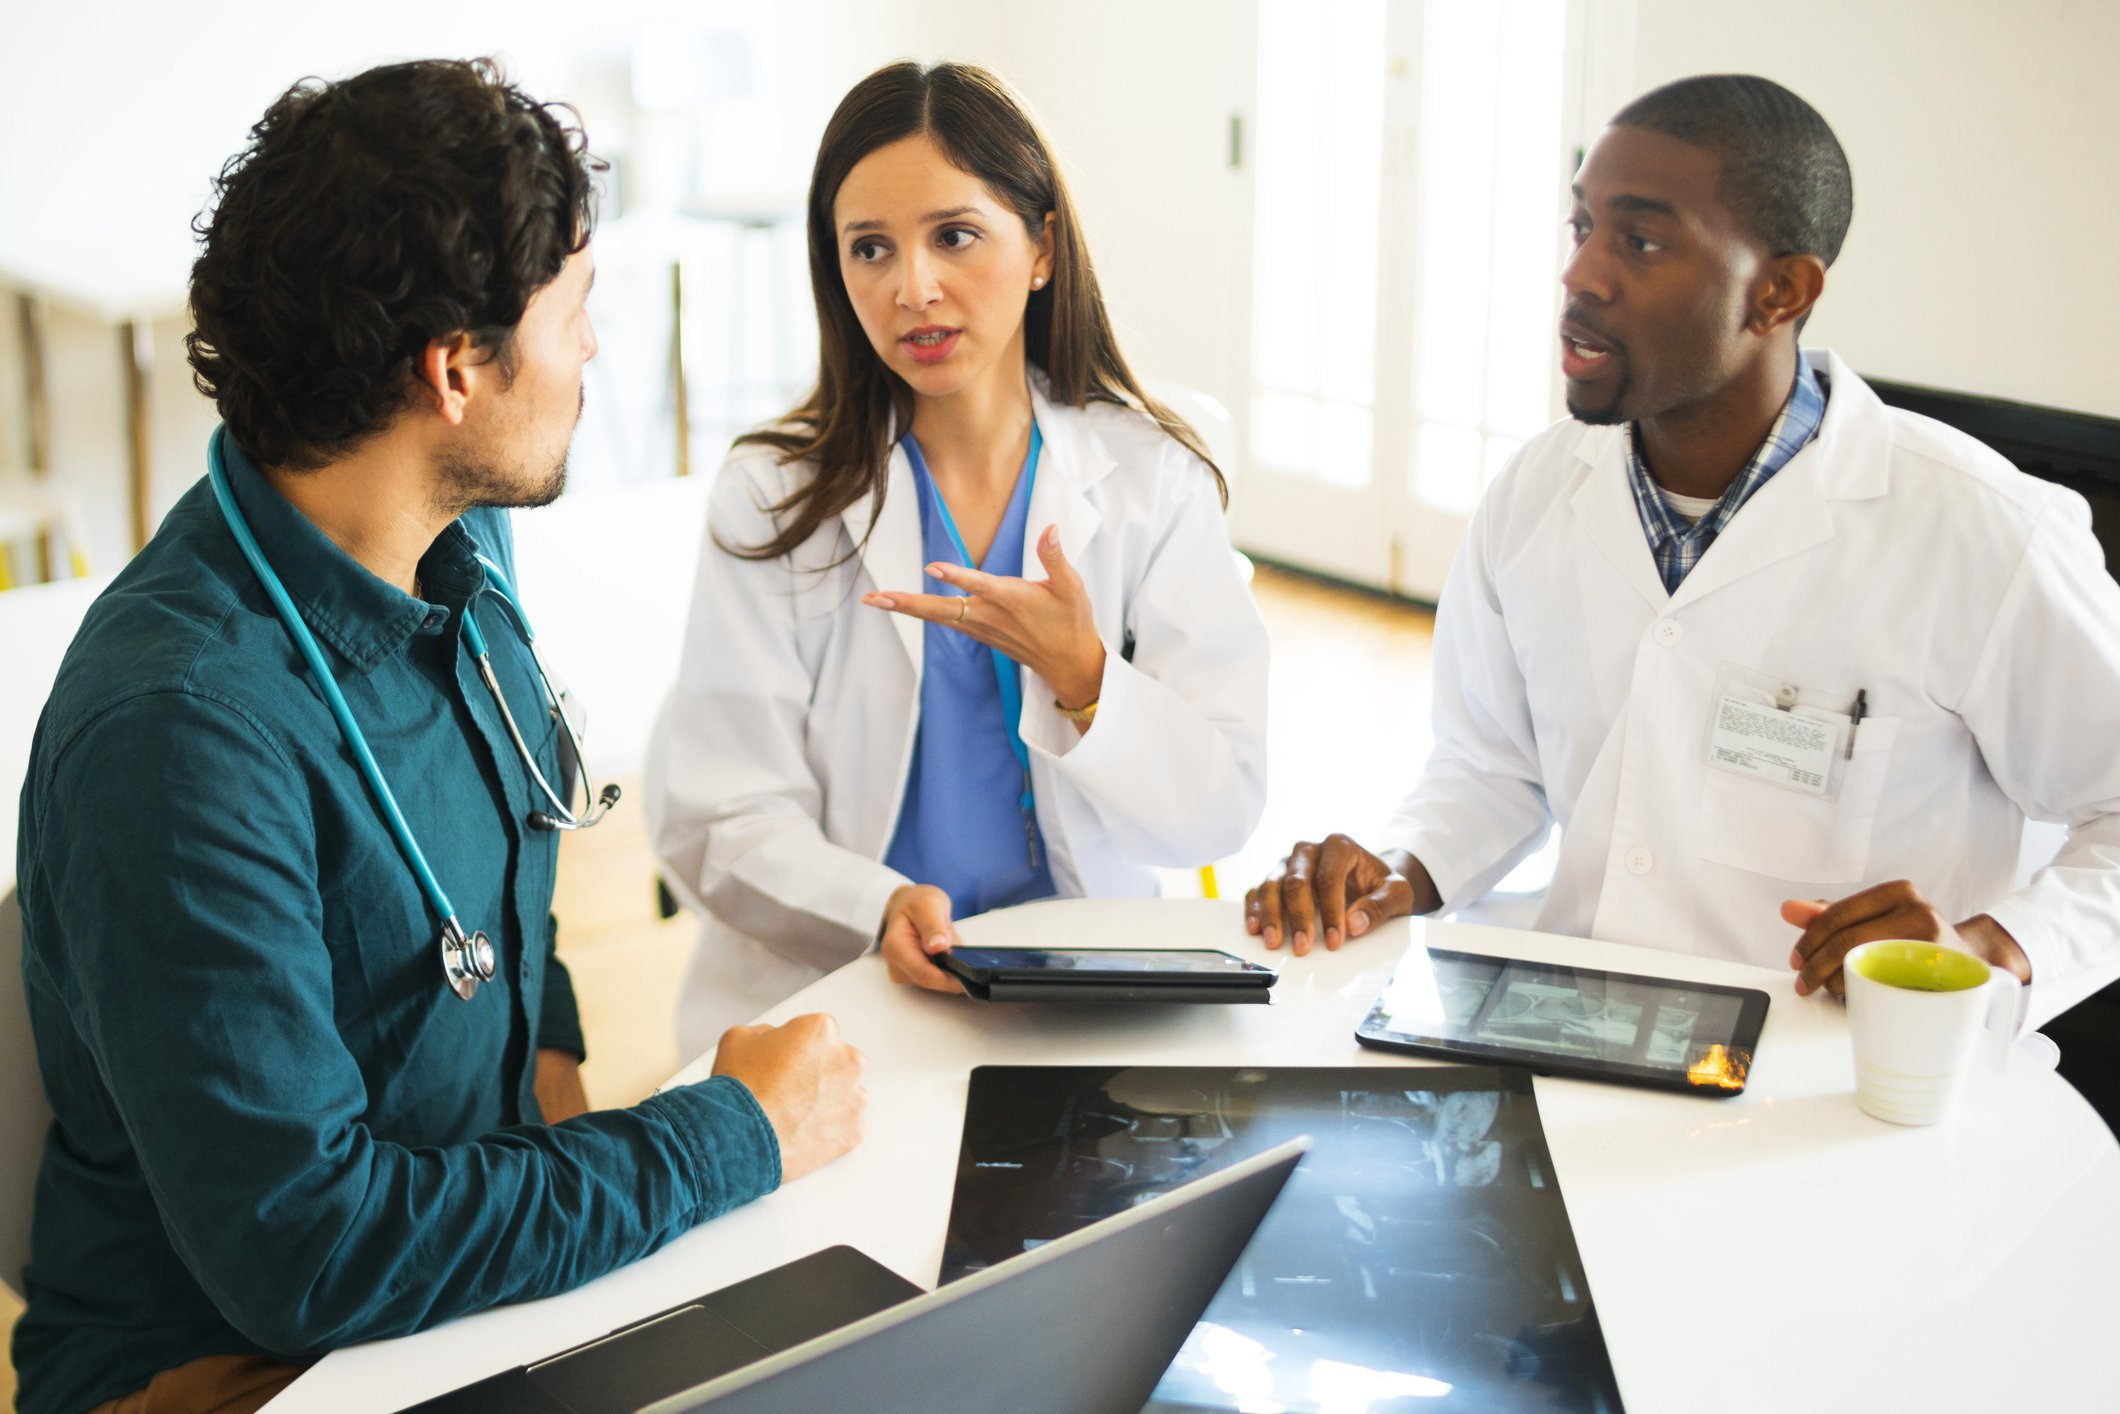 Three students discussing during clinical rotations.